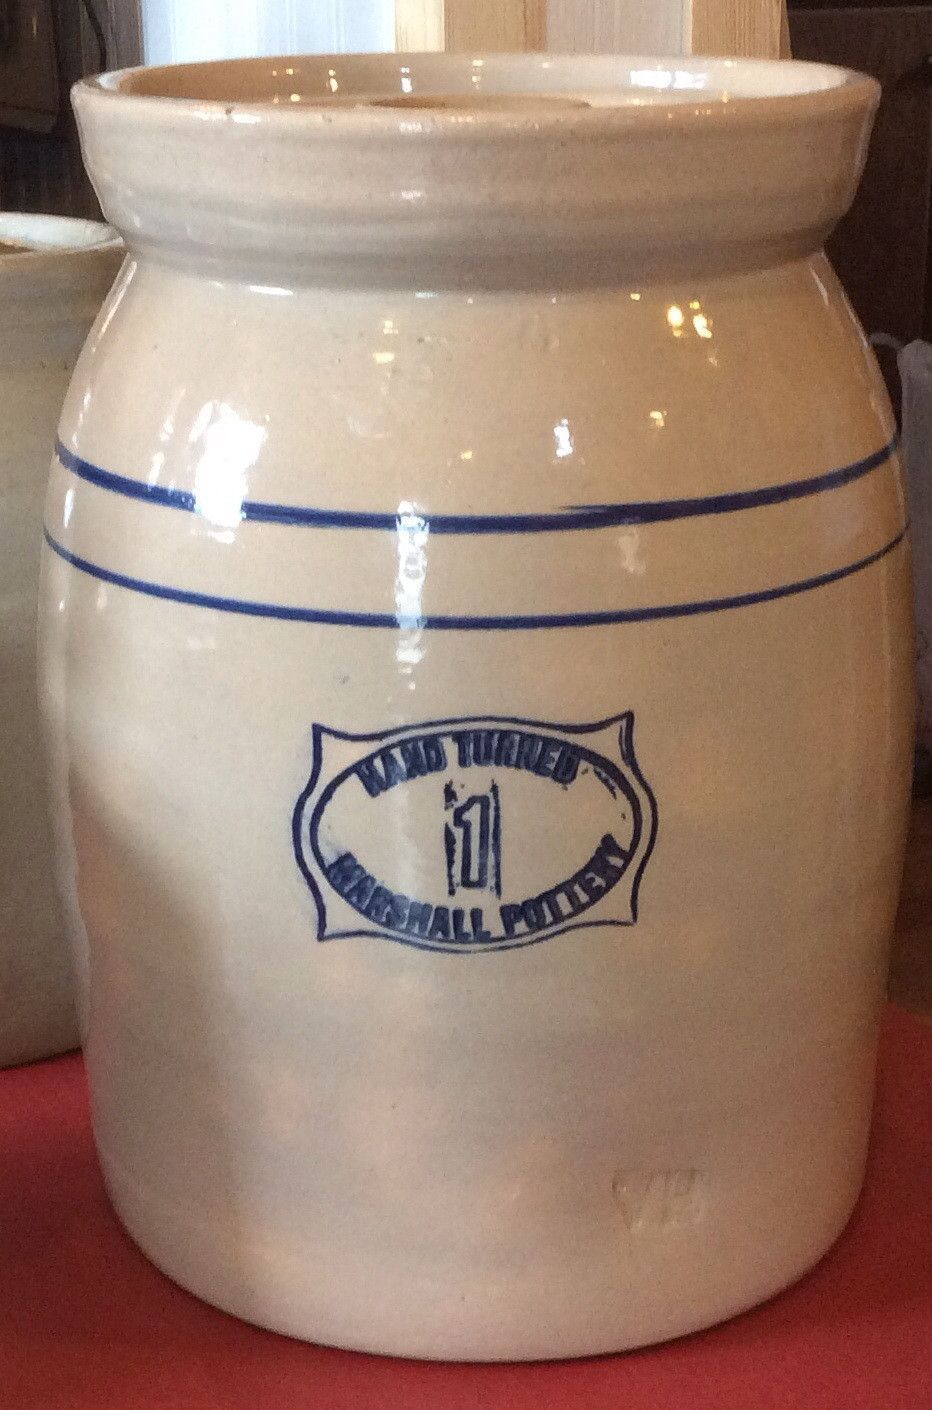 Hand Turned Marshall Pottery 1 Gallon Butter Churn Marshall Pottery Pottery Churning Butter